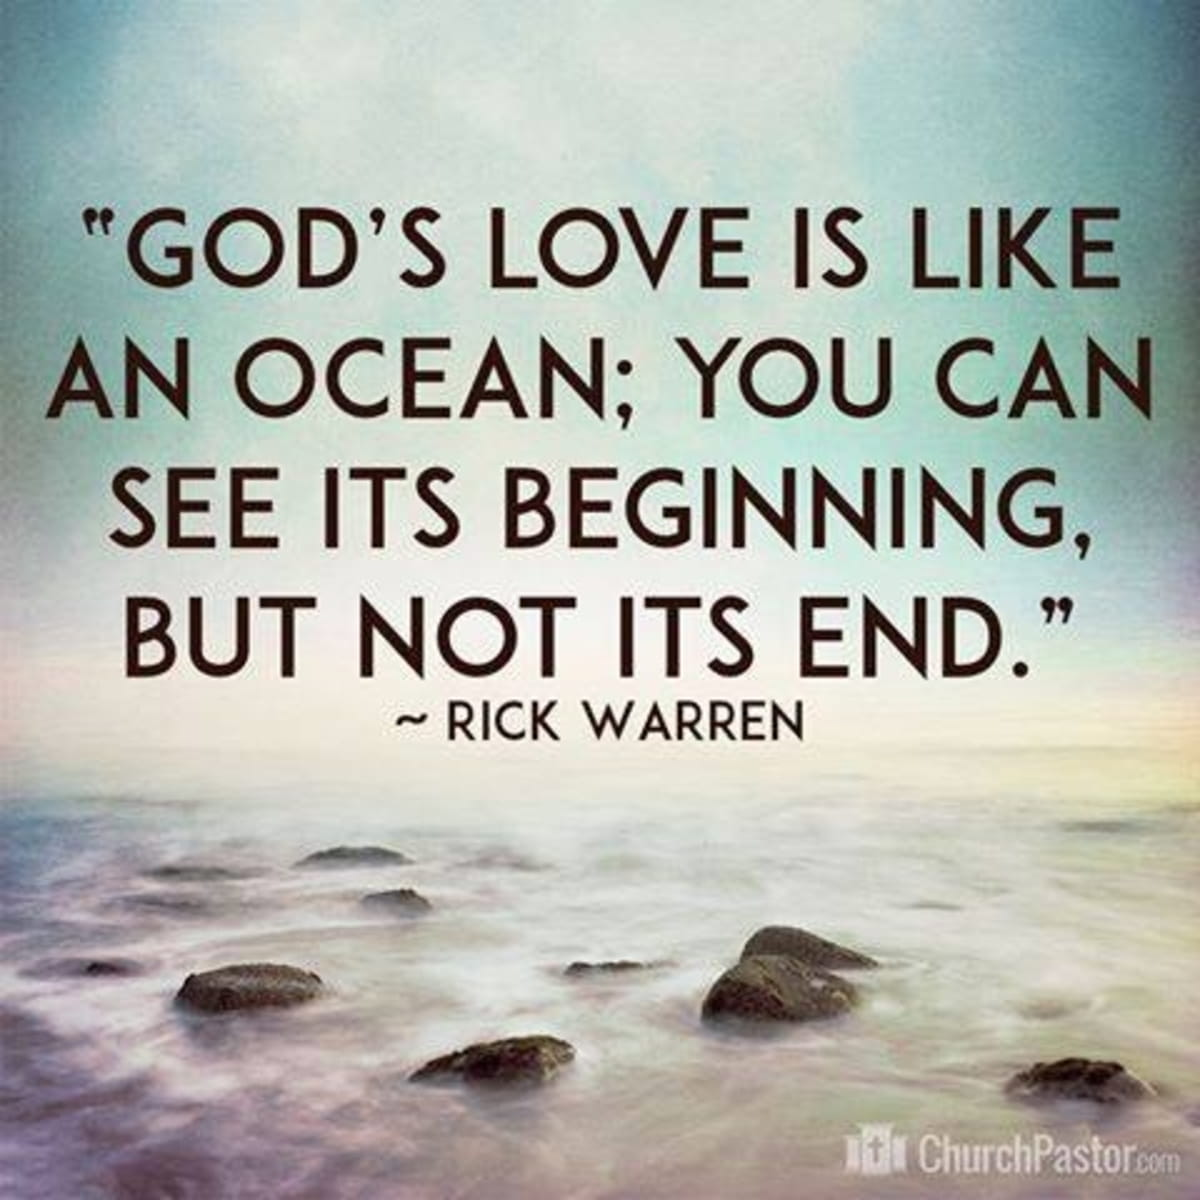 Quotes About The Ocean And Love: Love Like An Ocean